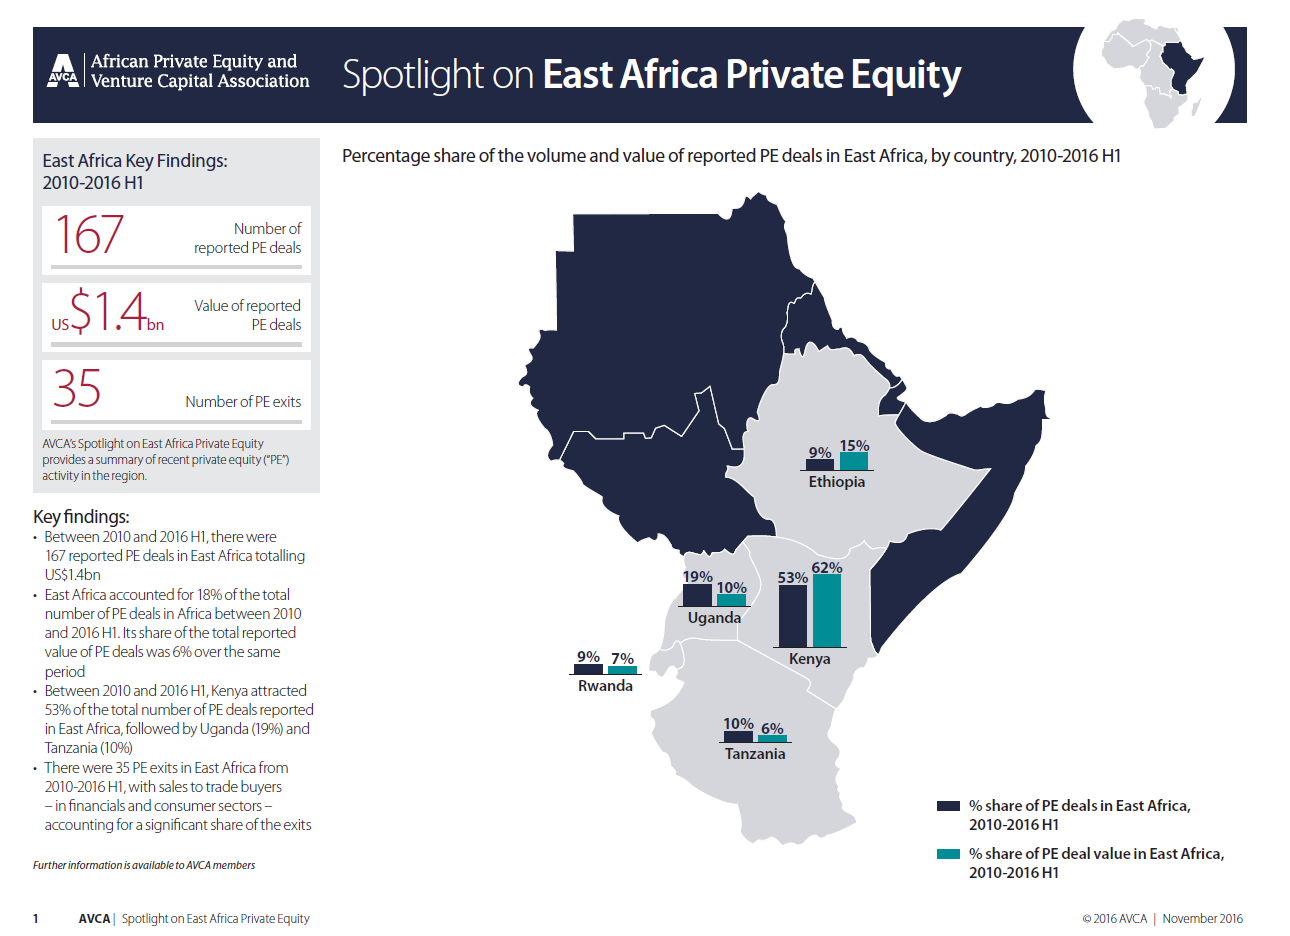 AVCA Spotlight on East Africa Private Equity